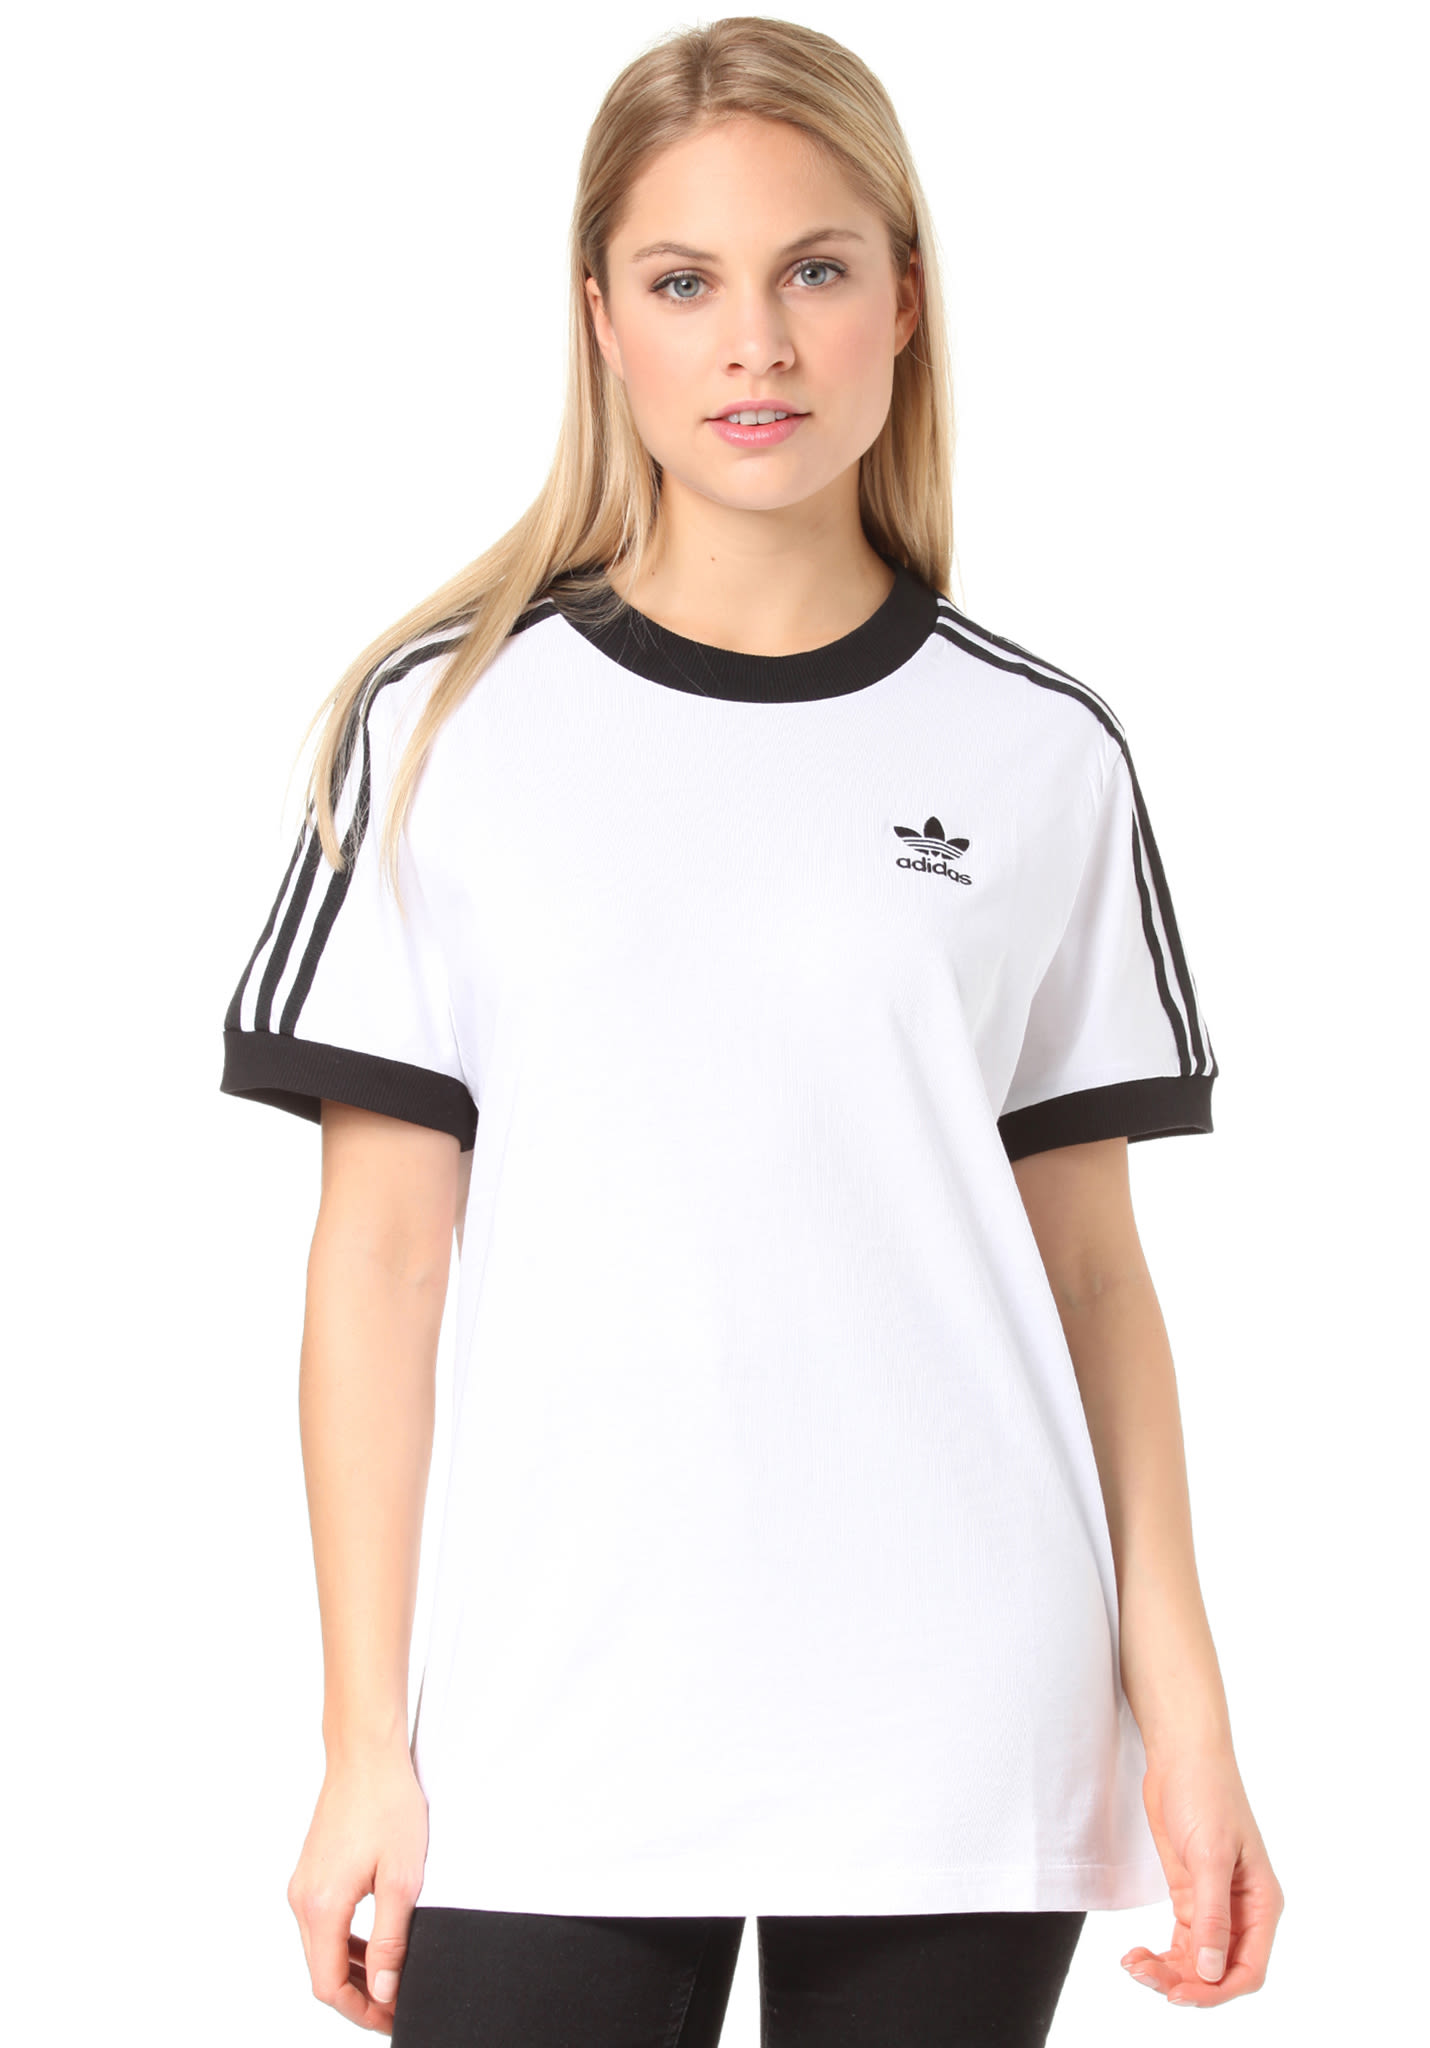 adidas Originals 3 Stripes - T-Shirt für Damen - Weiß